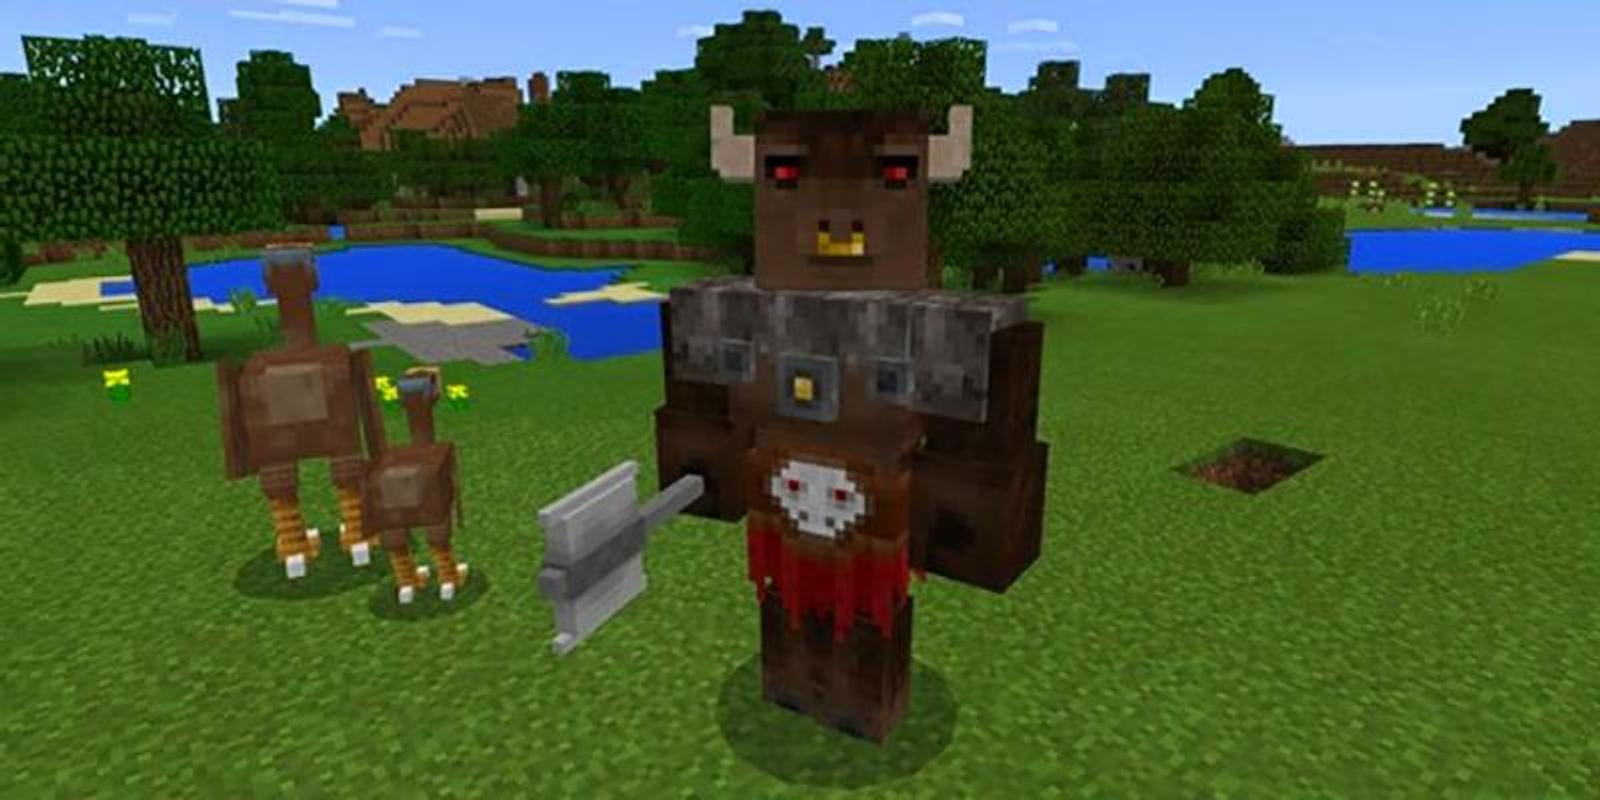 Amazing Mobs Addon For Minecraft PE APKDownload Kostenlos - Minecraft kostenlos spielen und downloaden